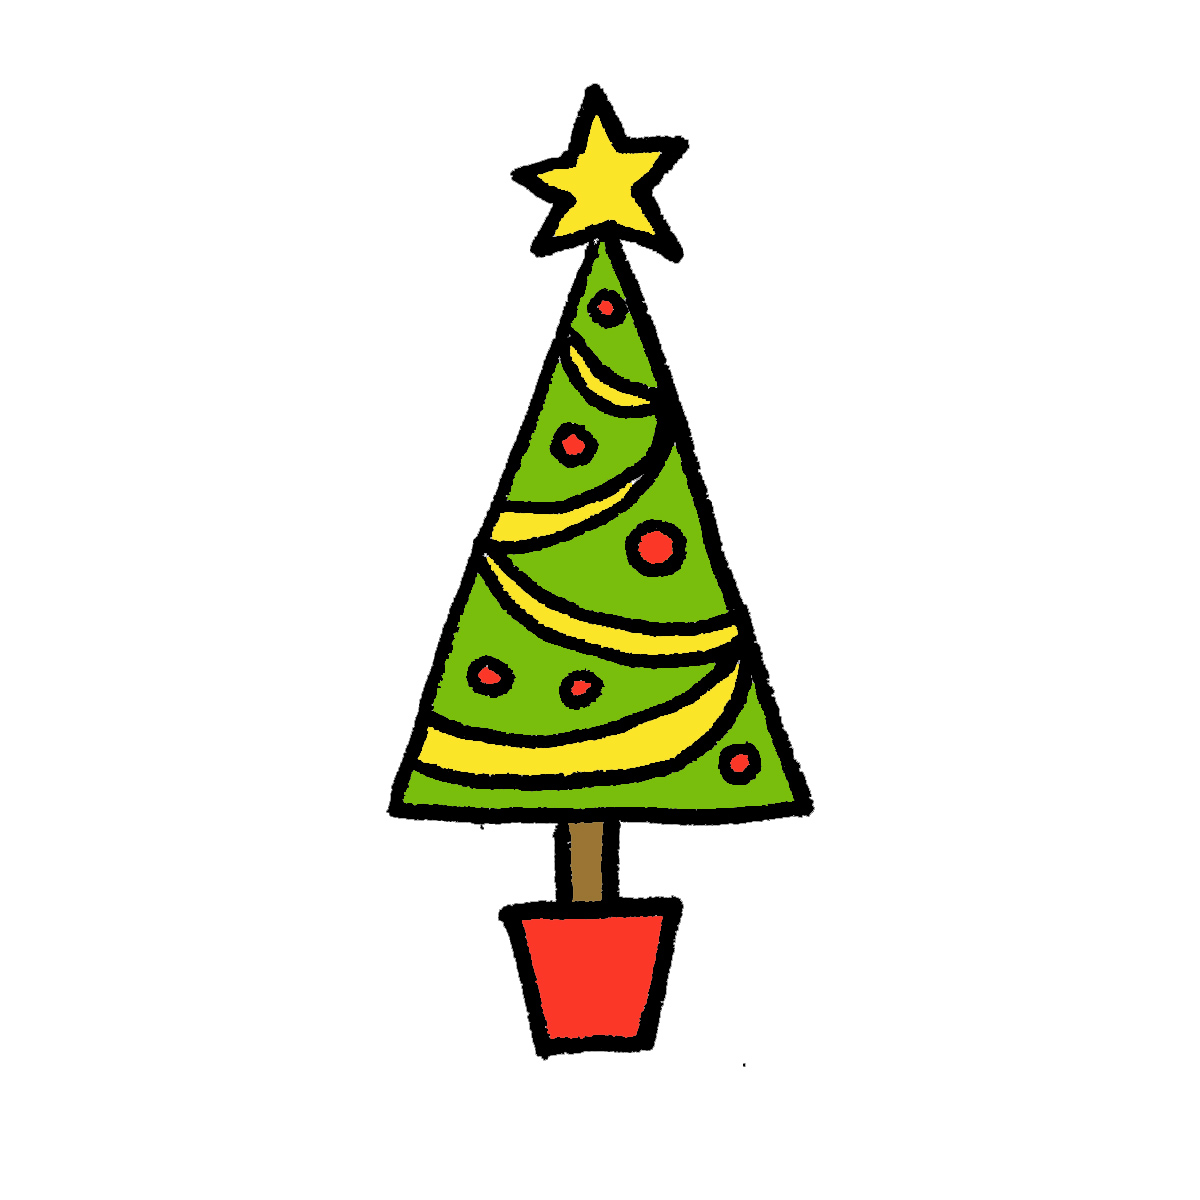 How To Draw A Christmas Tree 4 Cartoon Tutorials Find & download free graphic resources for christmas tree cartoon. how to draw a christmas tree 4 cartoon